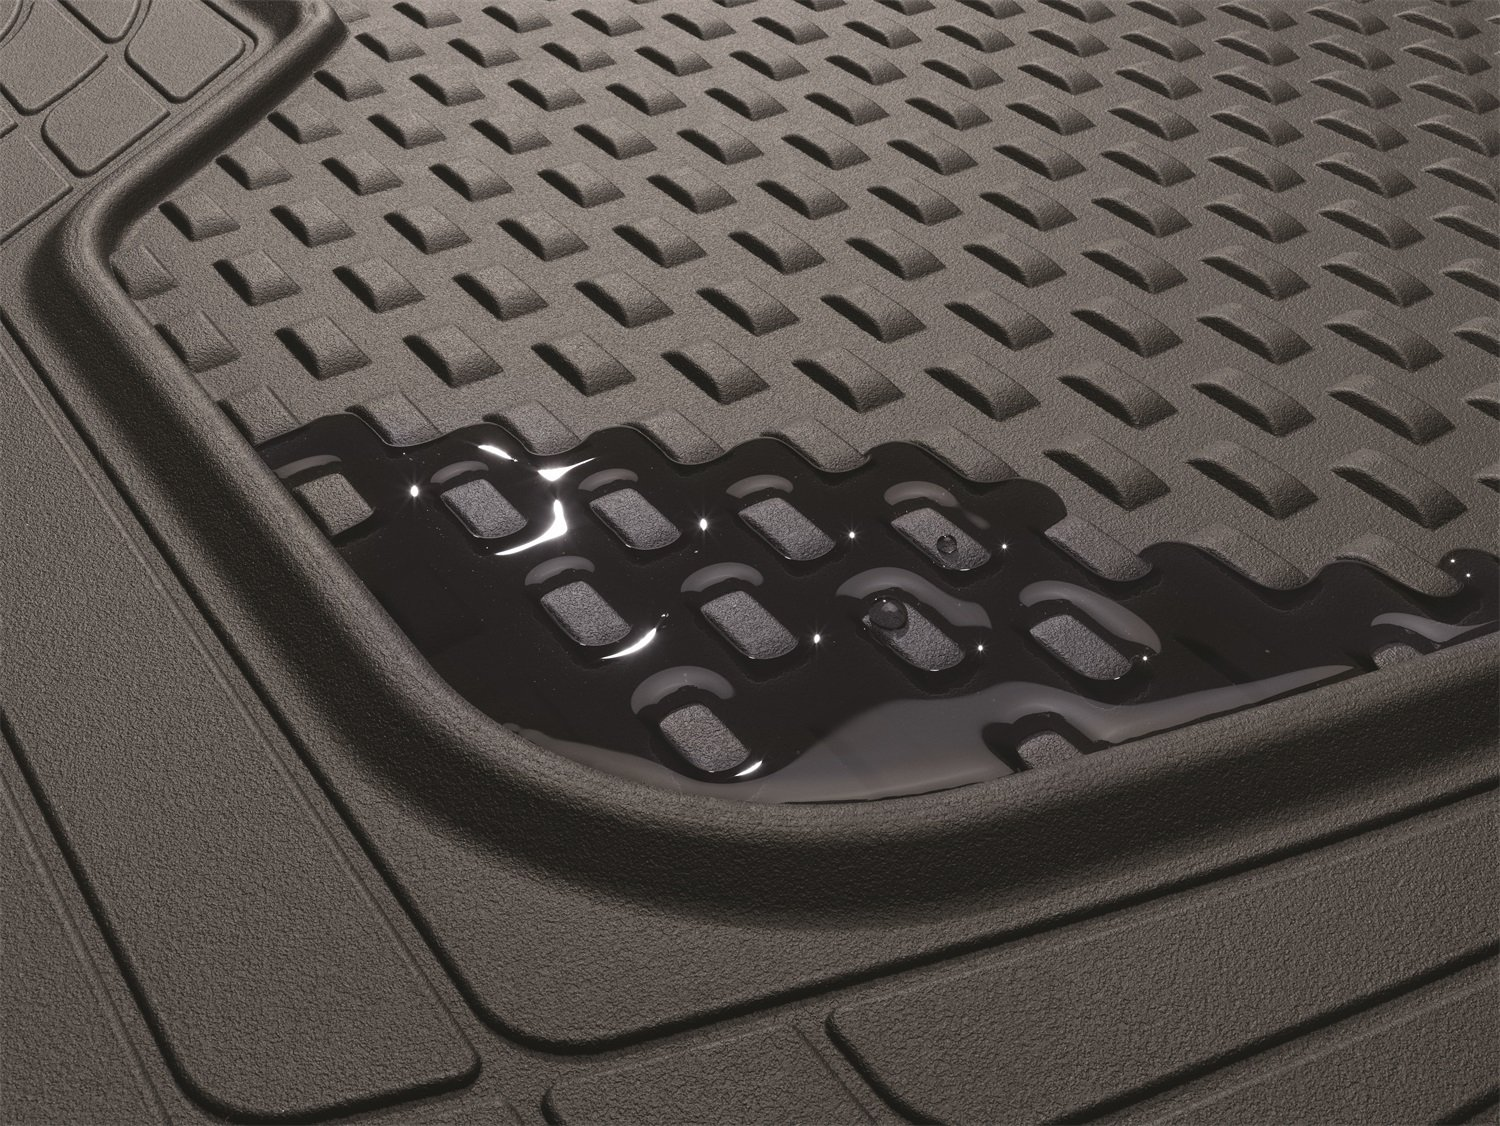 Weathertech mats acadia - Amazon Com Weathertech Trim To Fit Avm Front And Rear Universal Mats Grey Automotive